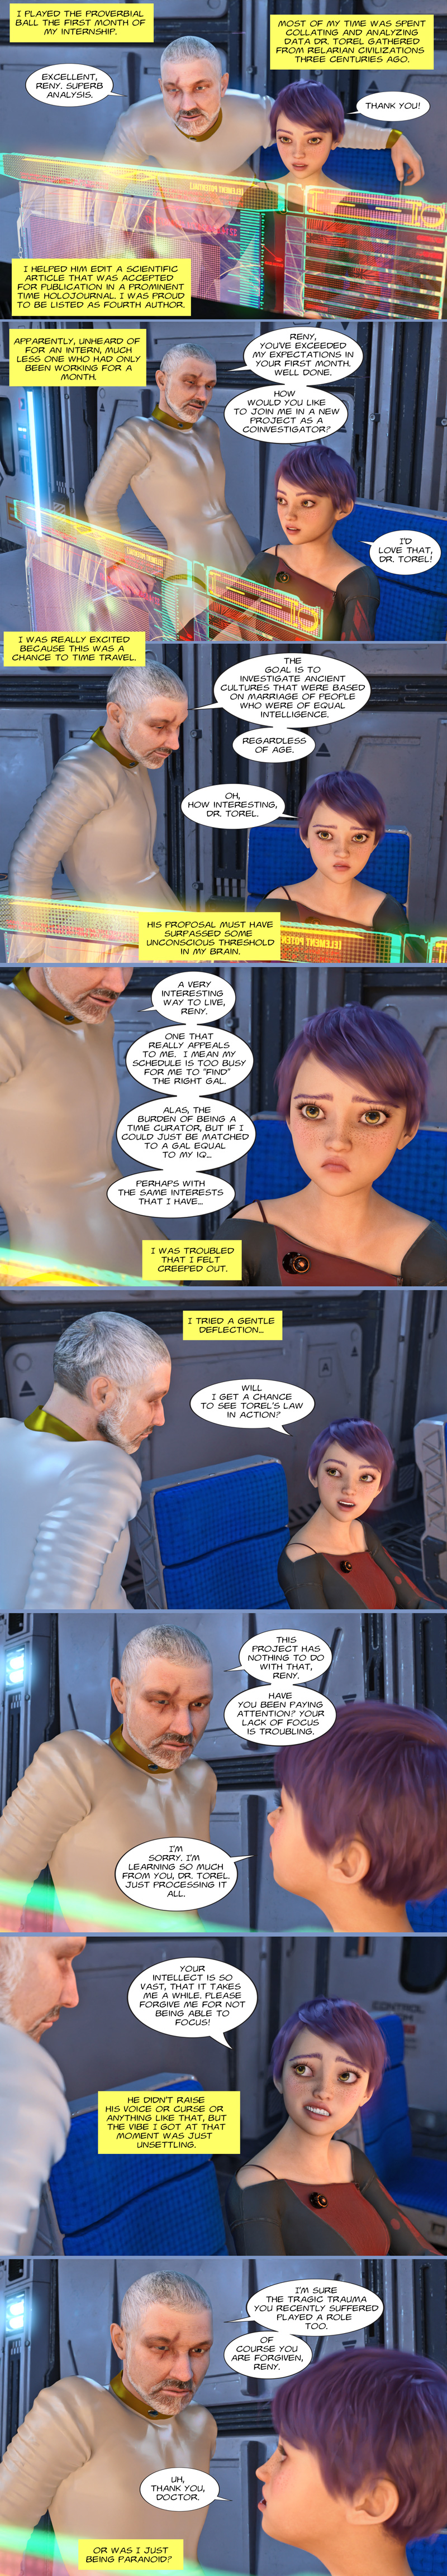 Chapter 19, page 12 – an unsettling vibe